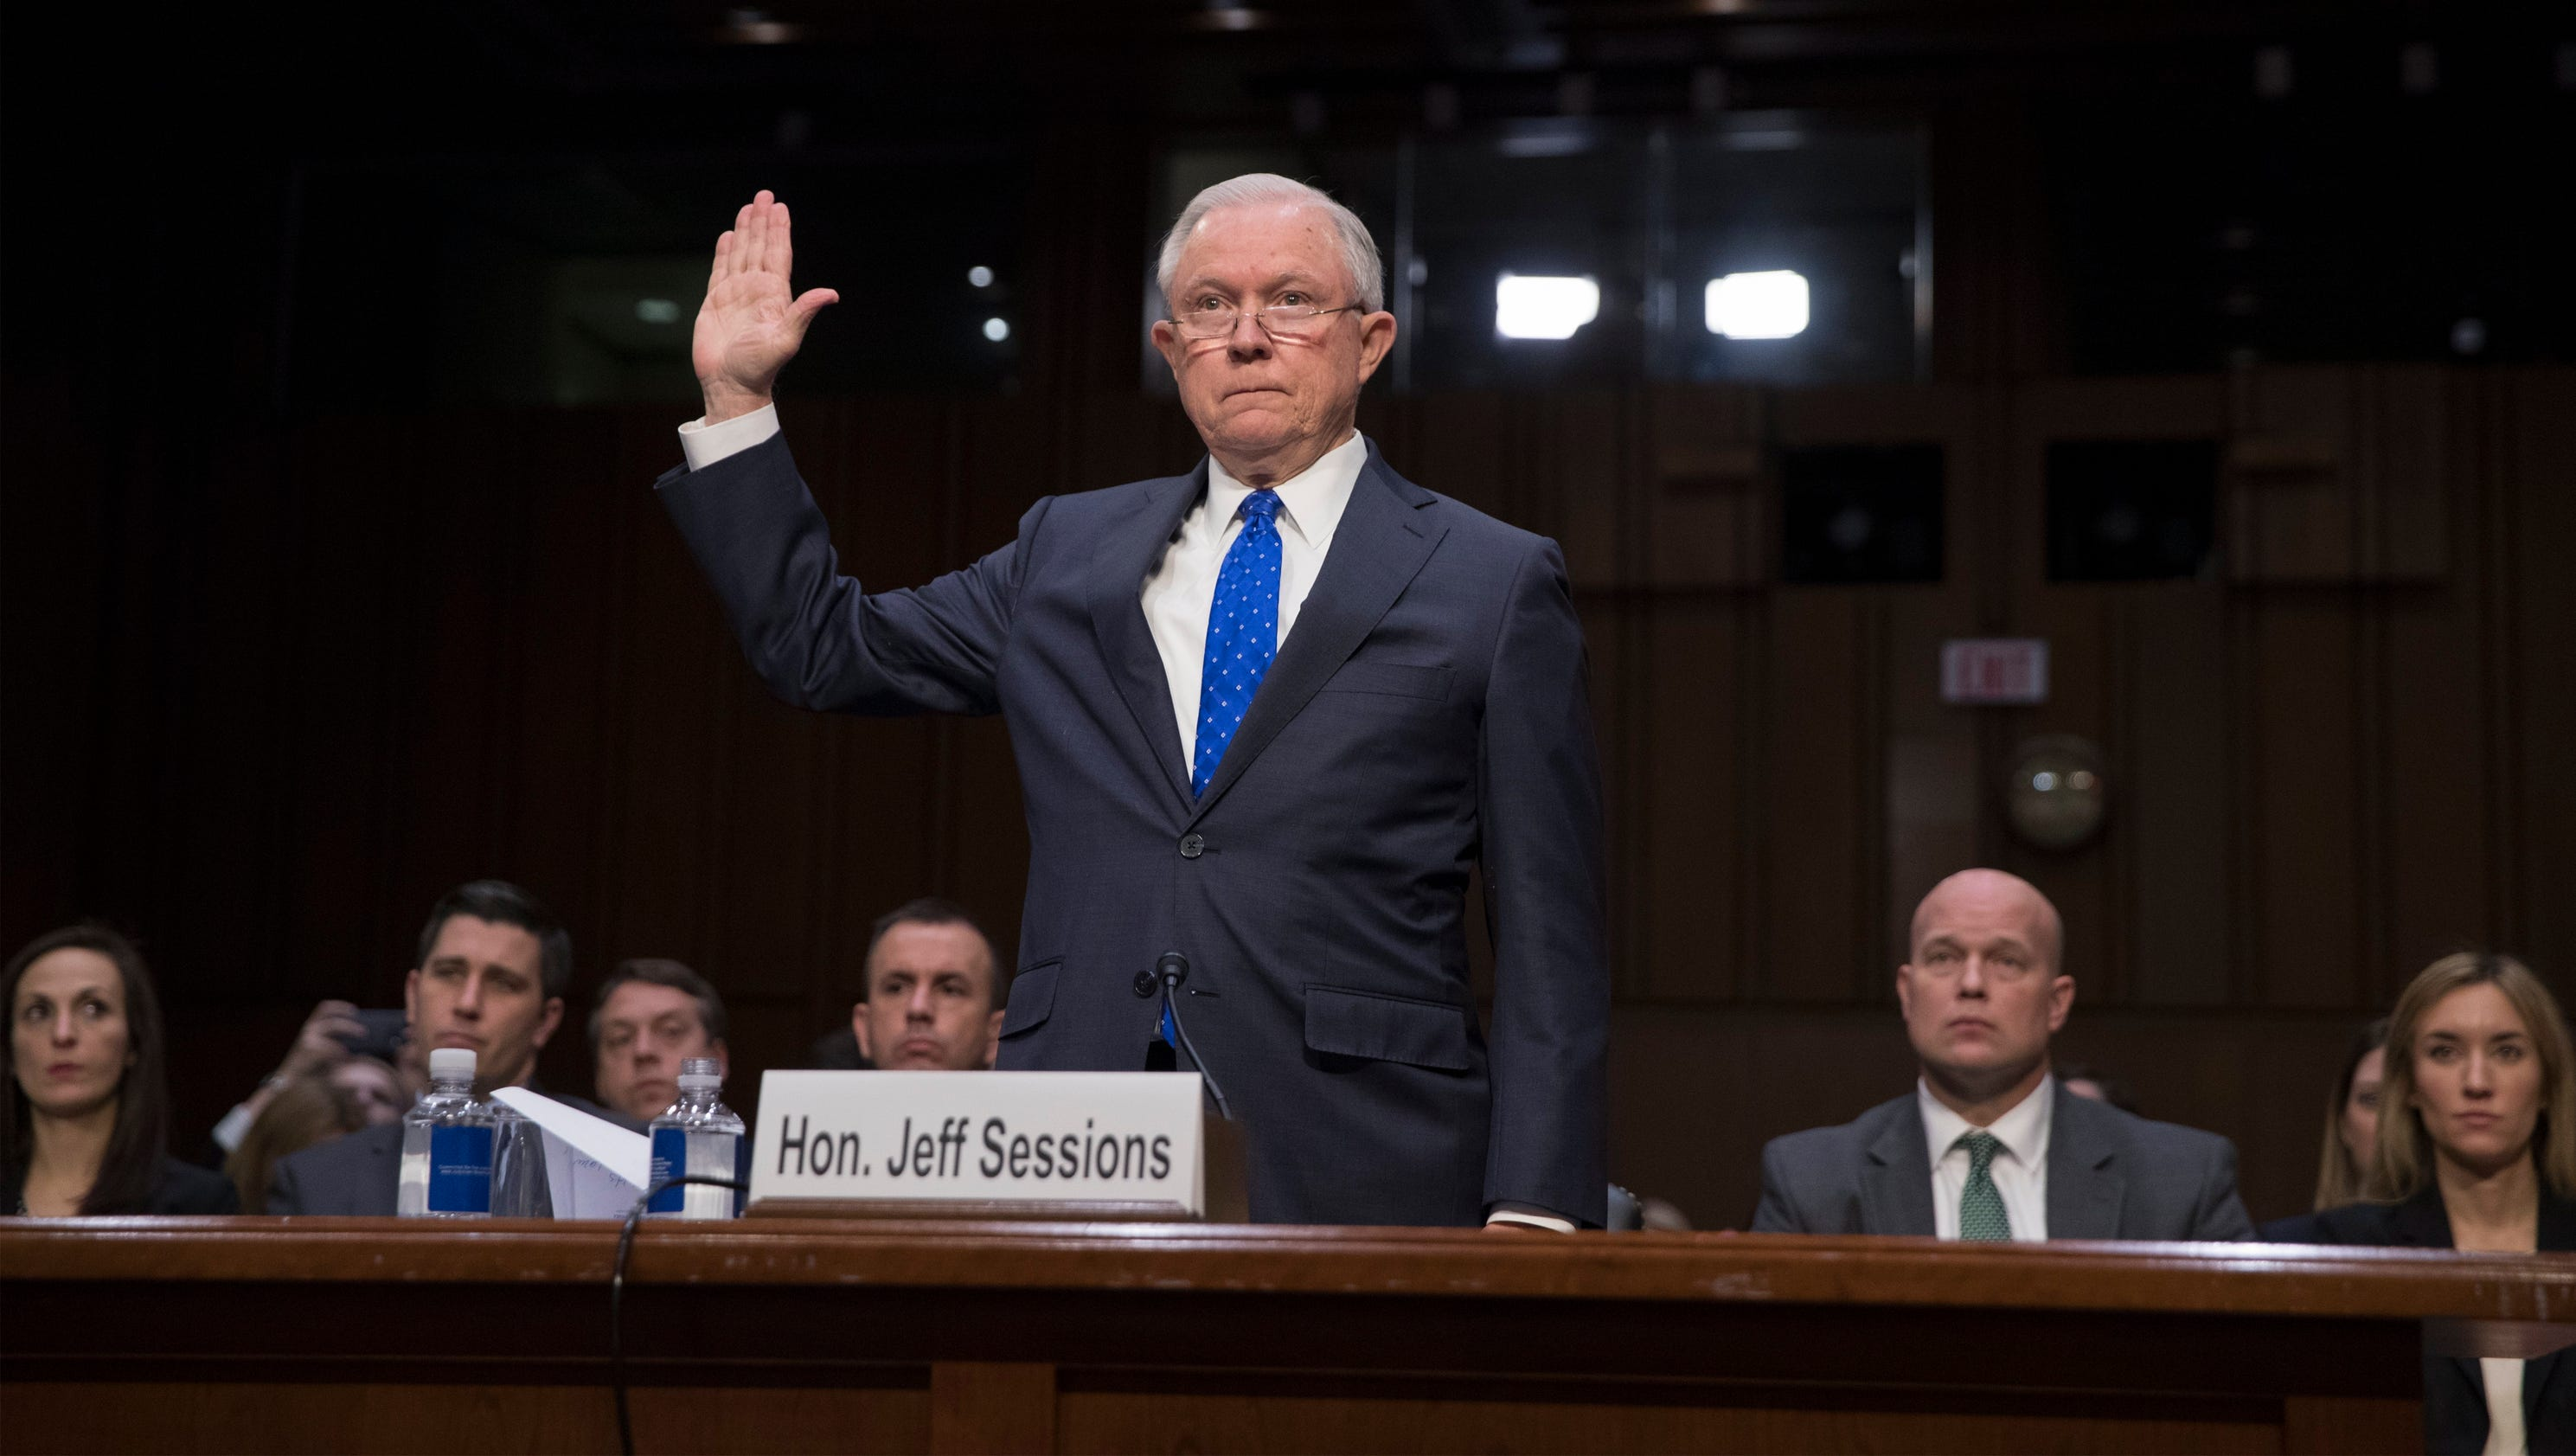 AG Jeff Sessions declines to answer questions about the firing of FBI director